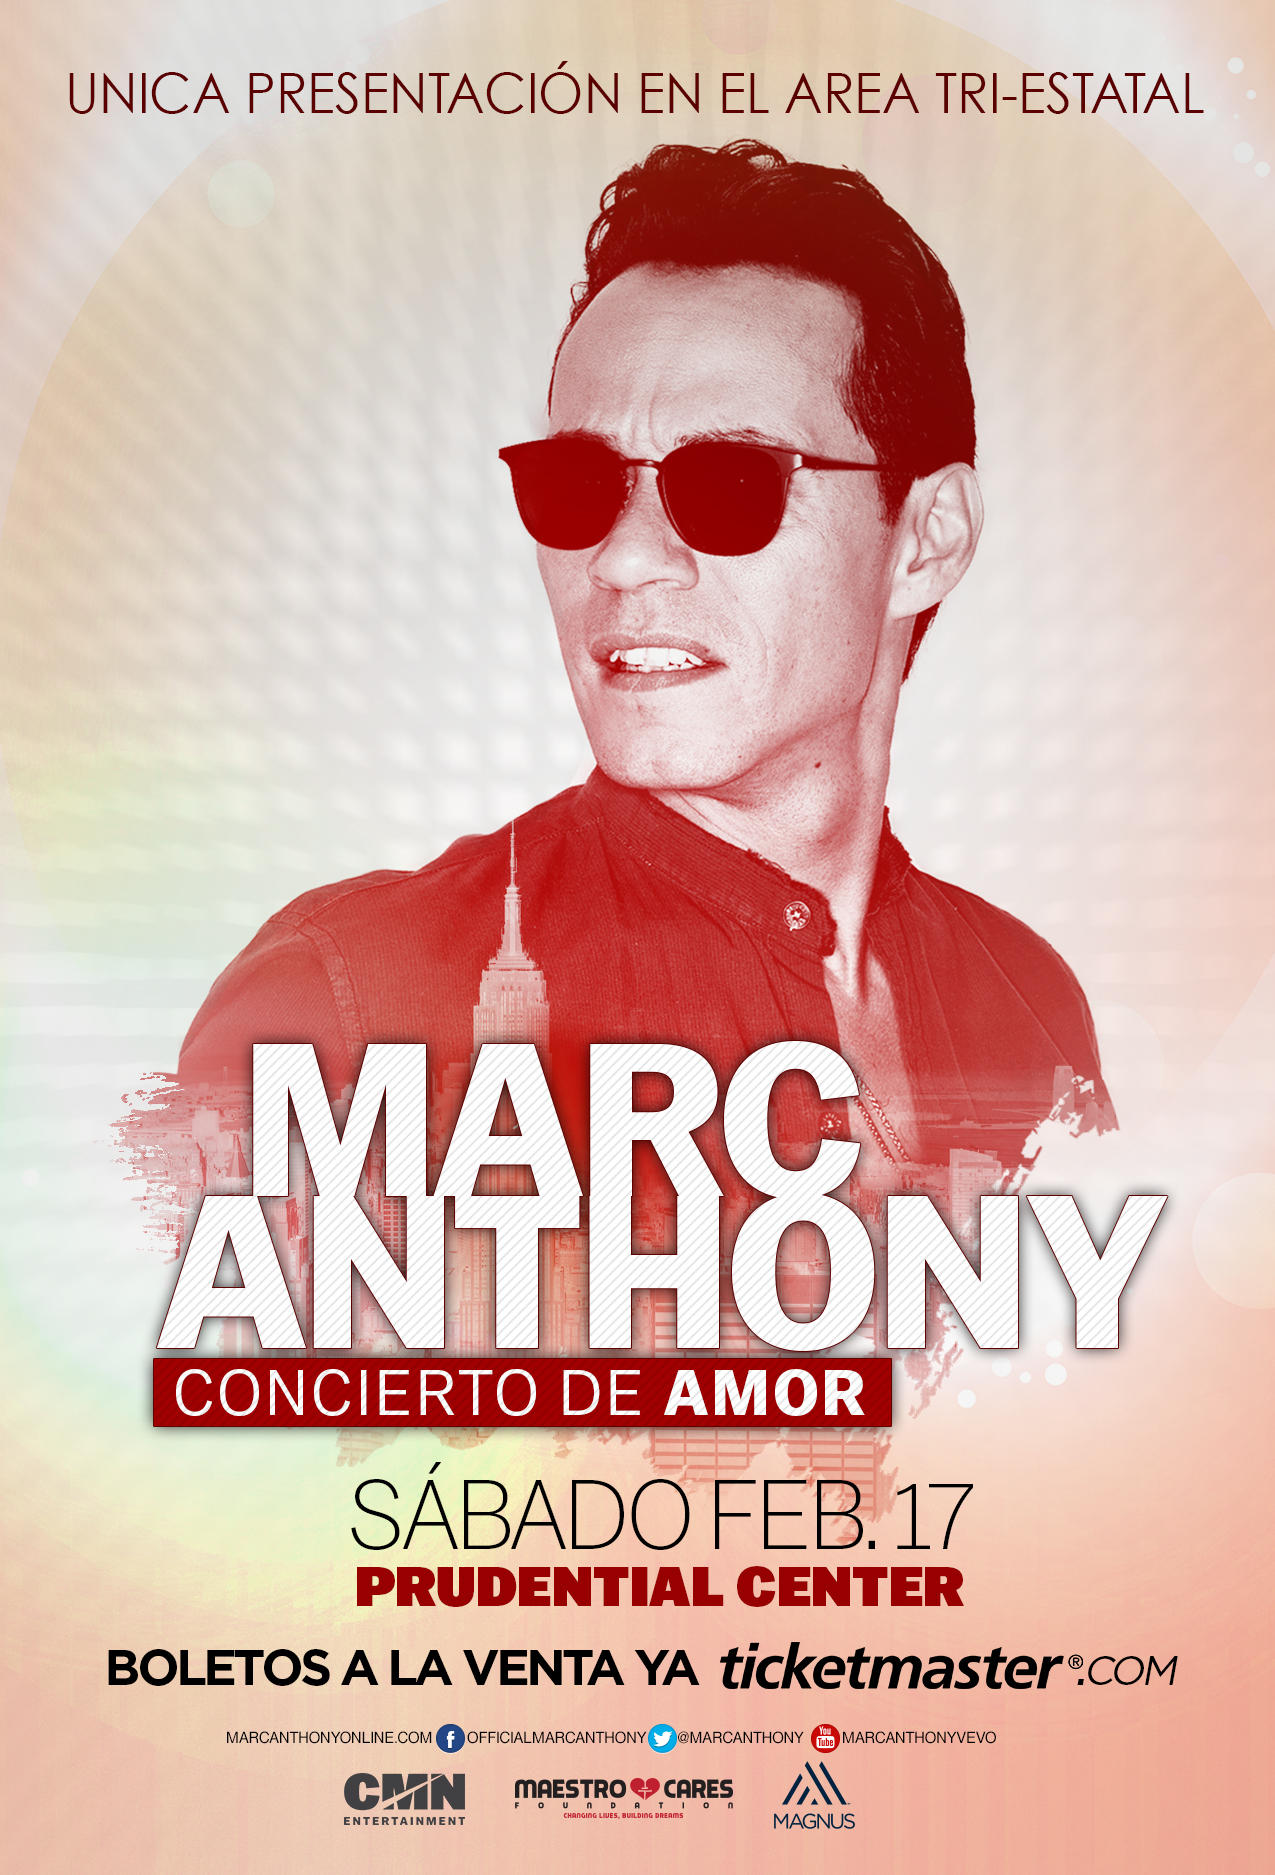 Marc anthony 2018